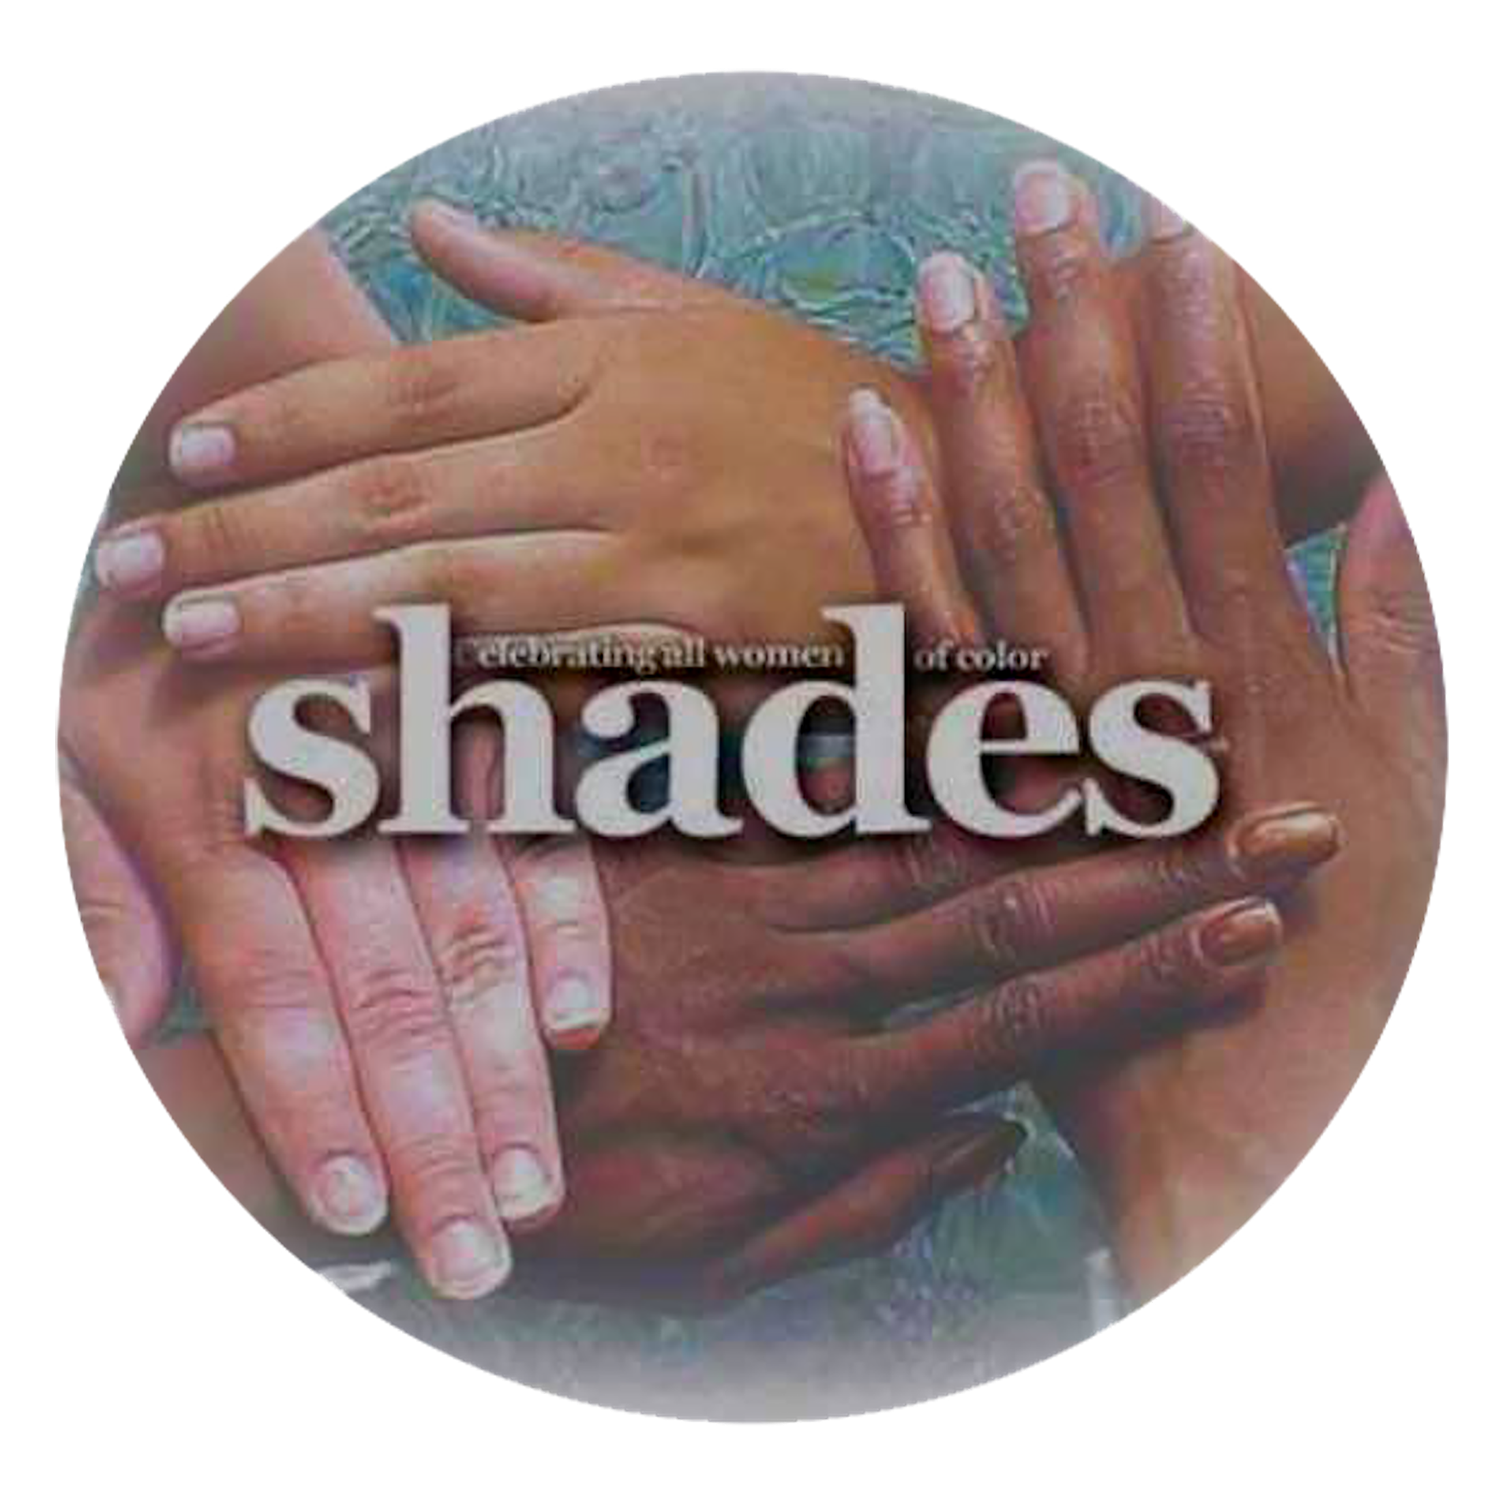 shades Magazine -- Celebrating All Women of Color